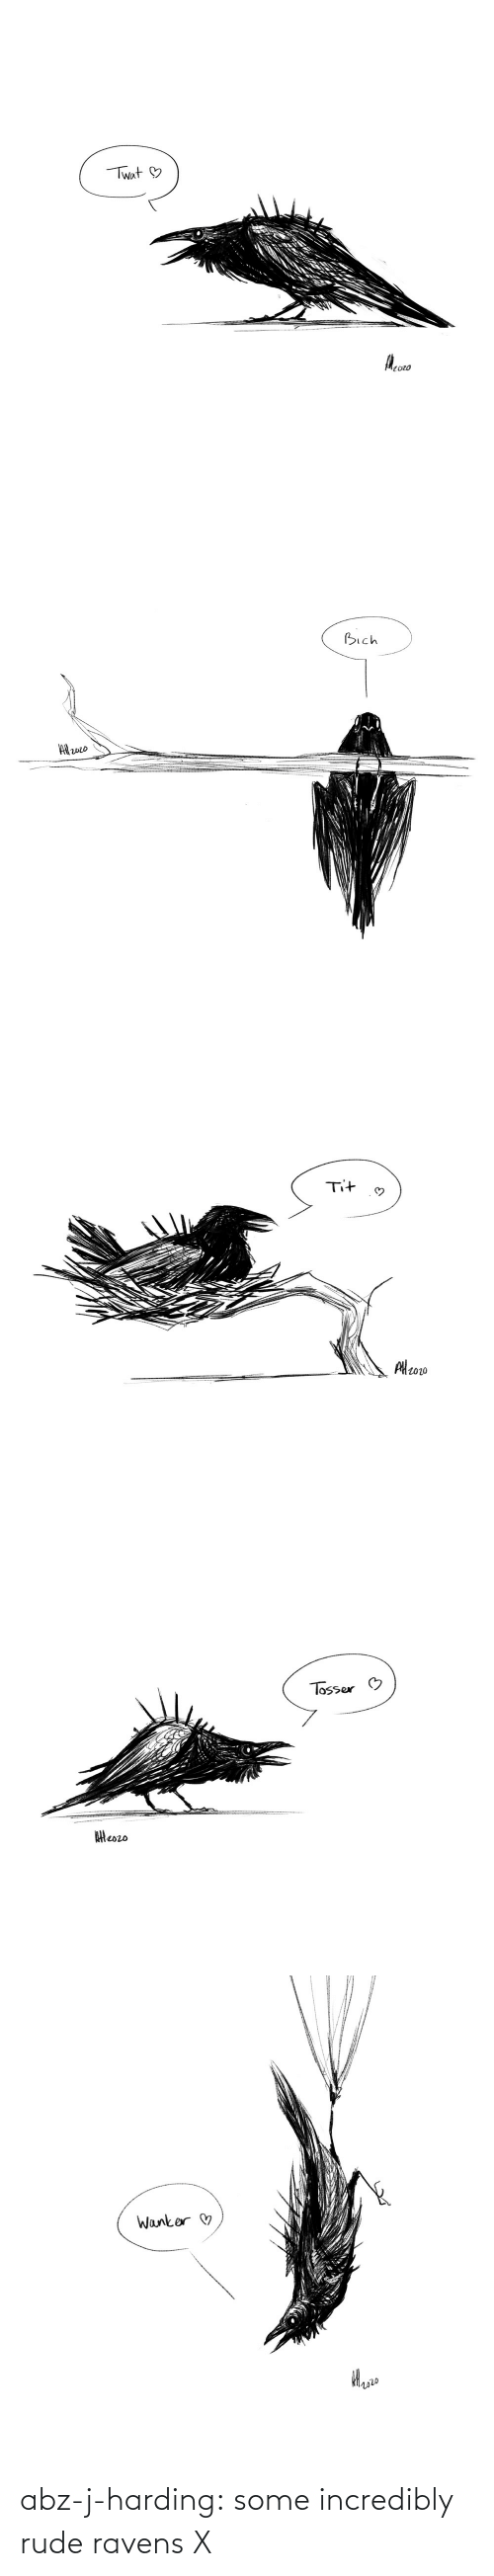 Incredibly: abz-j-harding: some incredibly rude ravens X